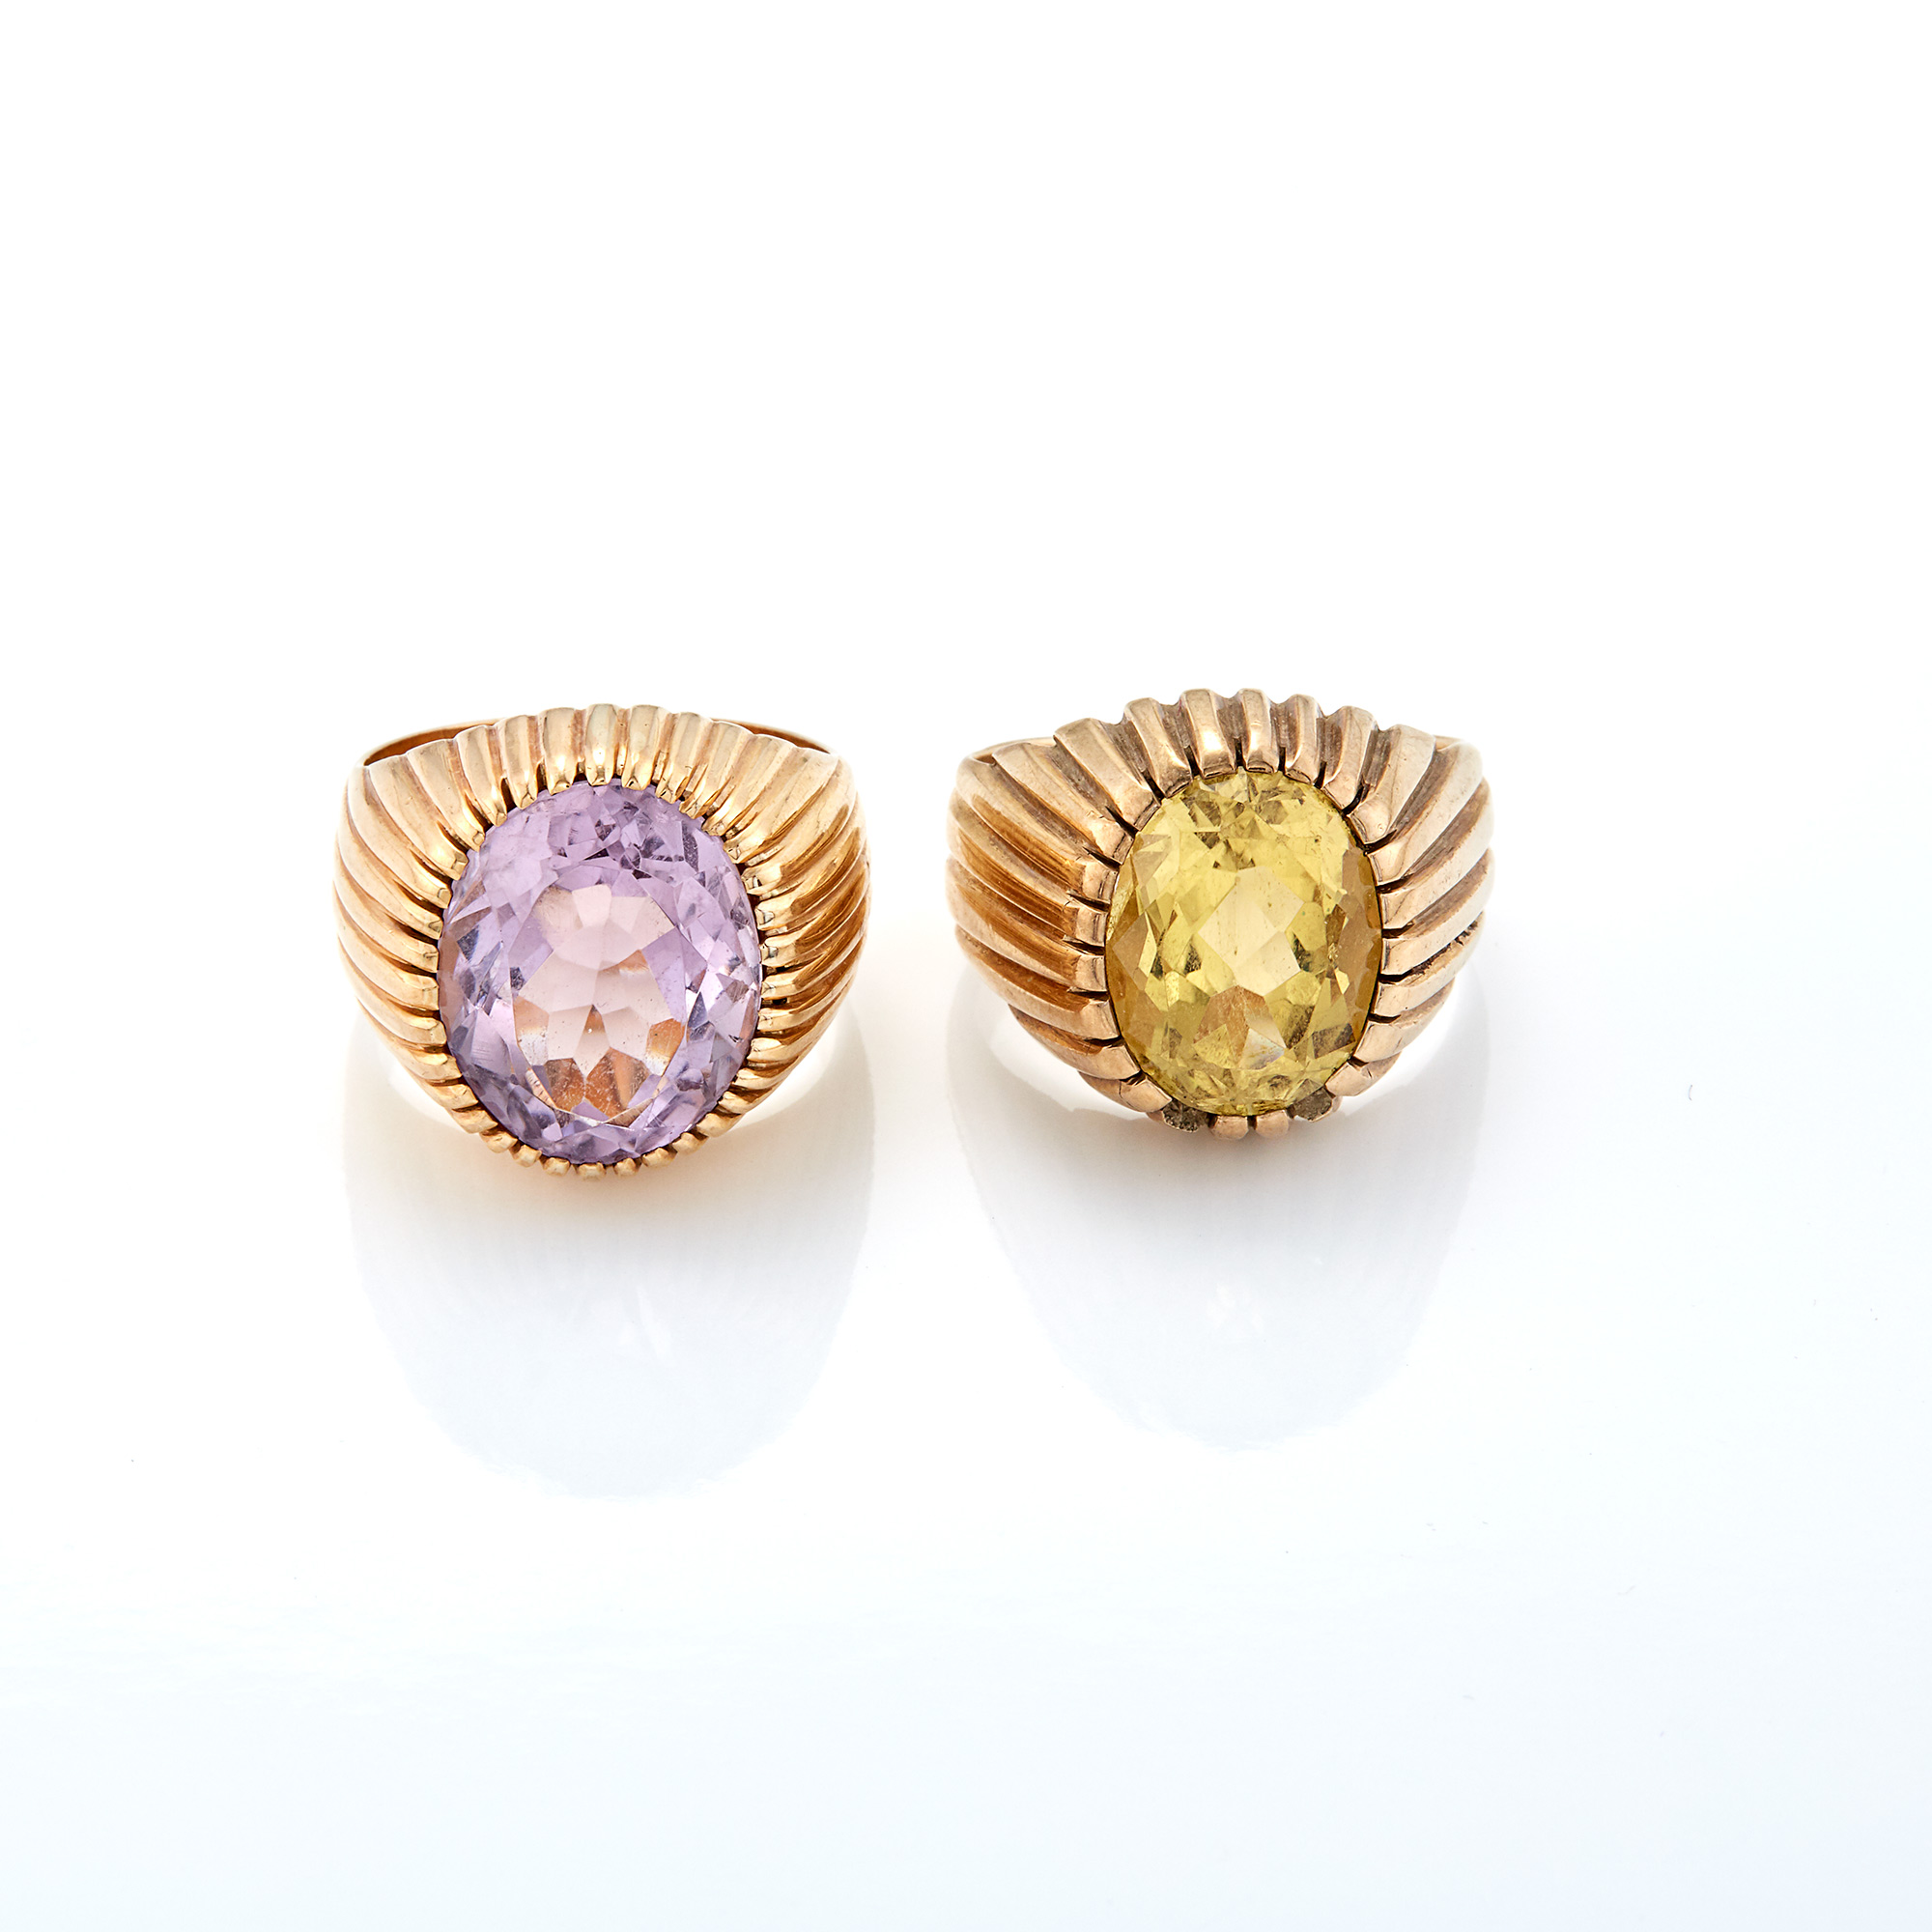 Lot image - Rose Gold and Amethyst Ring and Gold and Citrine Ring